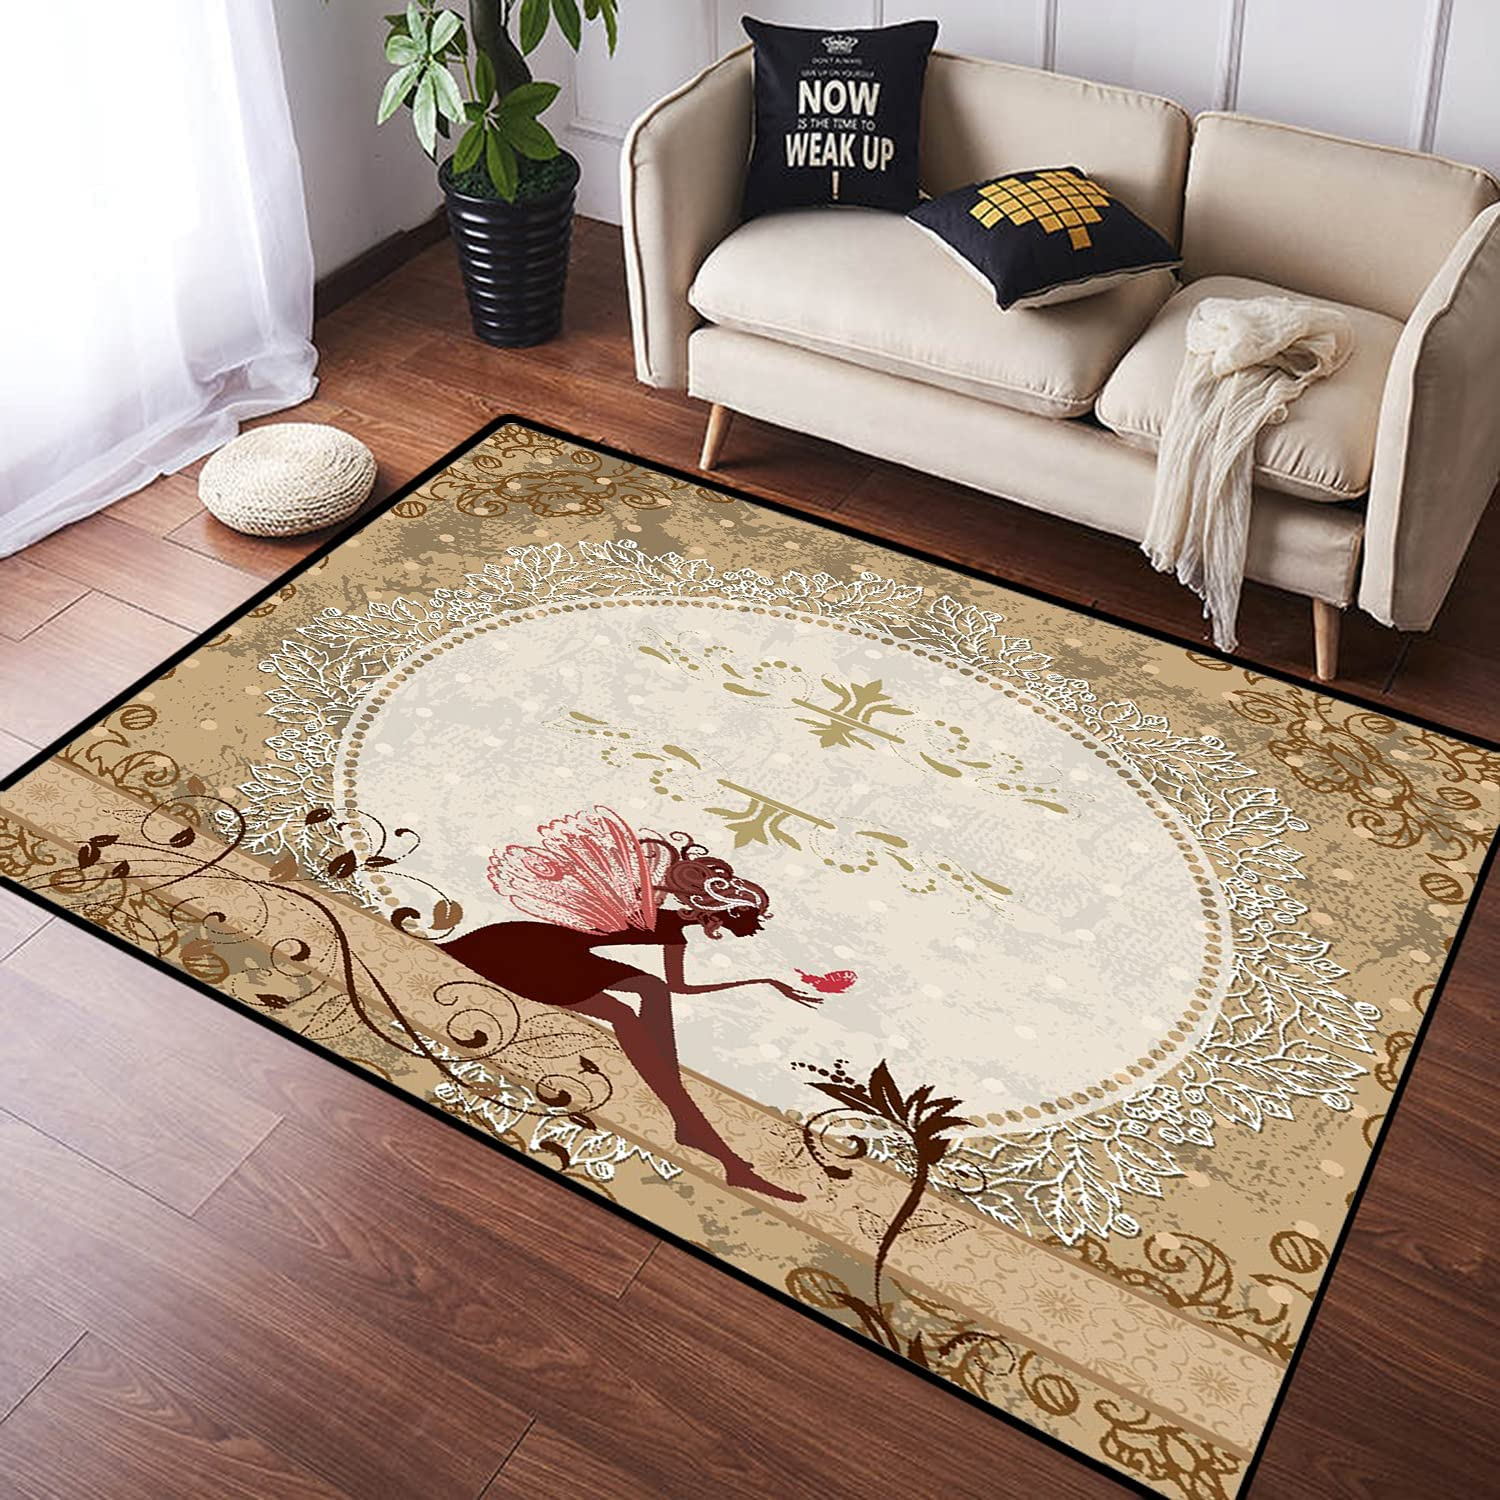 ZOMOY Long Floor Mat Carpet 2021new sold out shipping free Pixie Elf Fairytale Fantasy Sitting